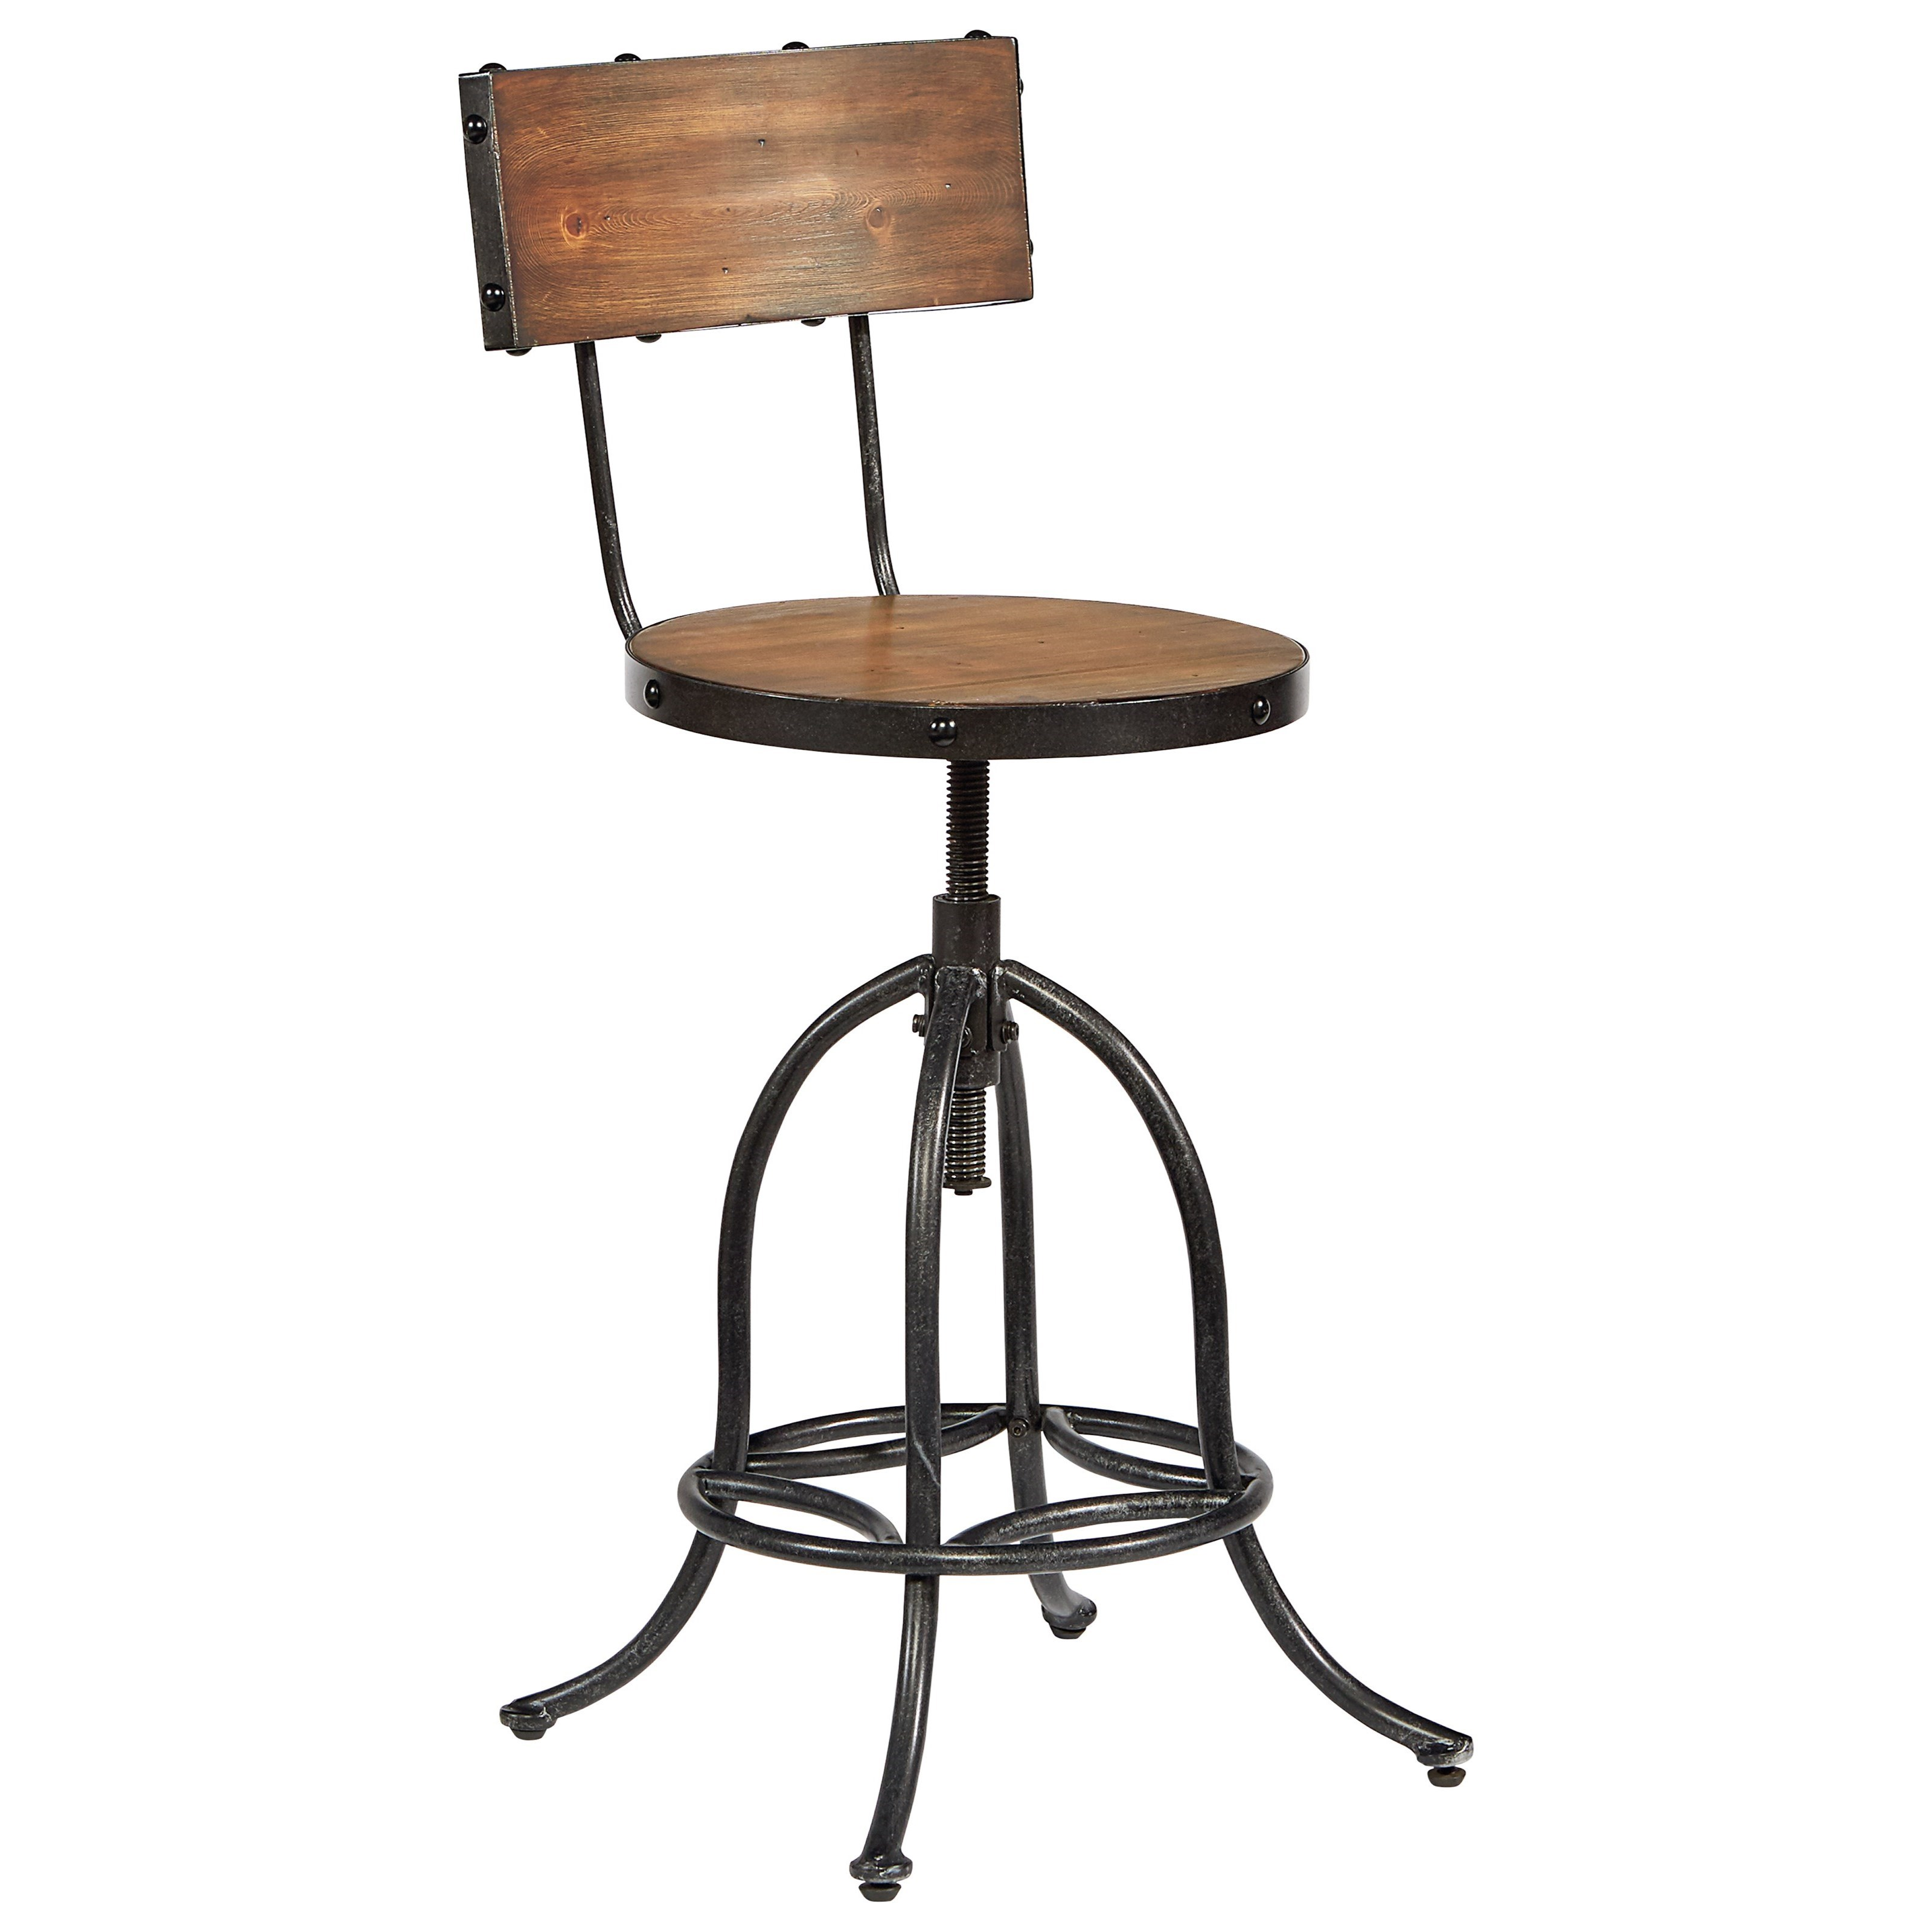 Architect Stool with Bronze Legs and Wooden Seat